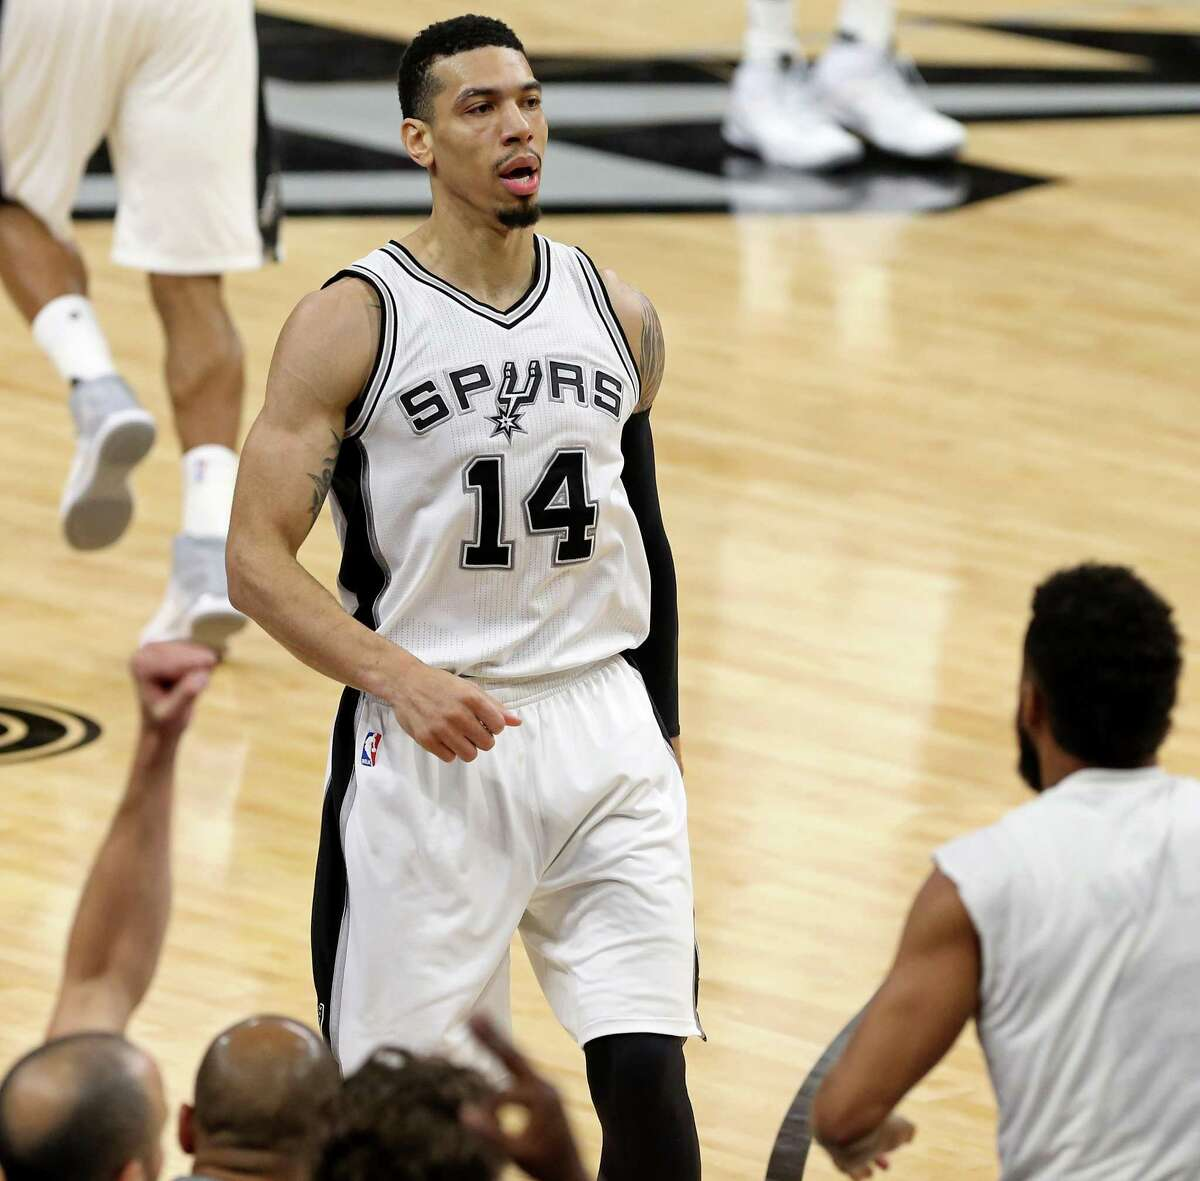 San Antonio Spurs' Danny Green reacts after making a 3-pointer during first half action against the Golden State Warriors Wednesday March 29, 2017 at the AT&T Center.